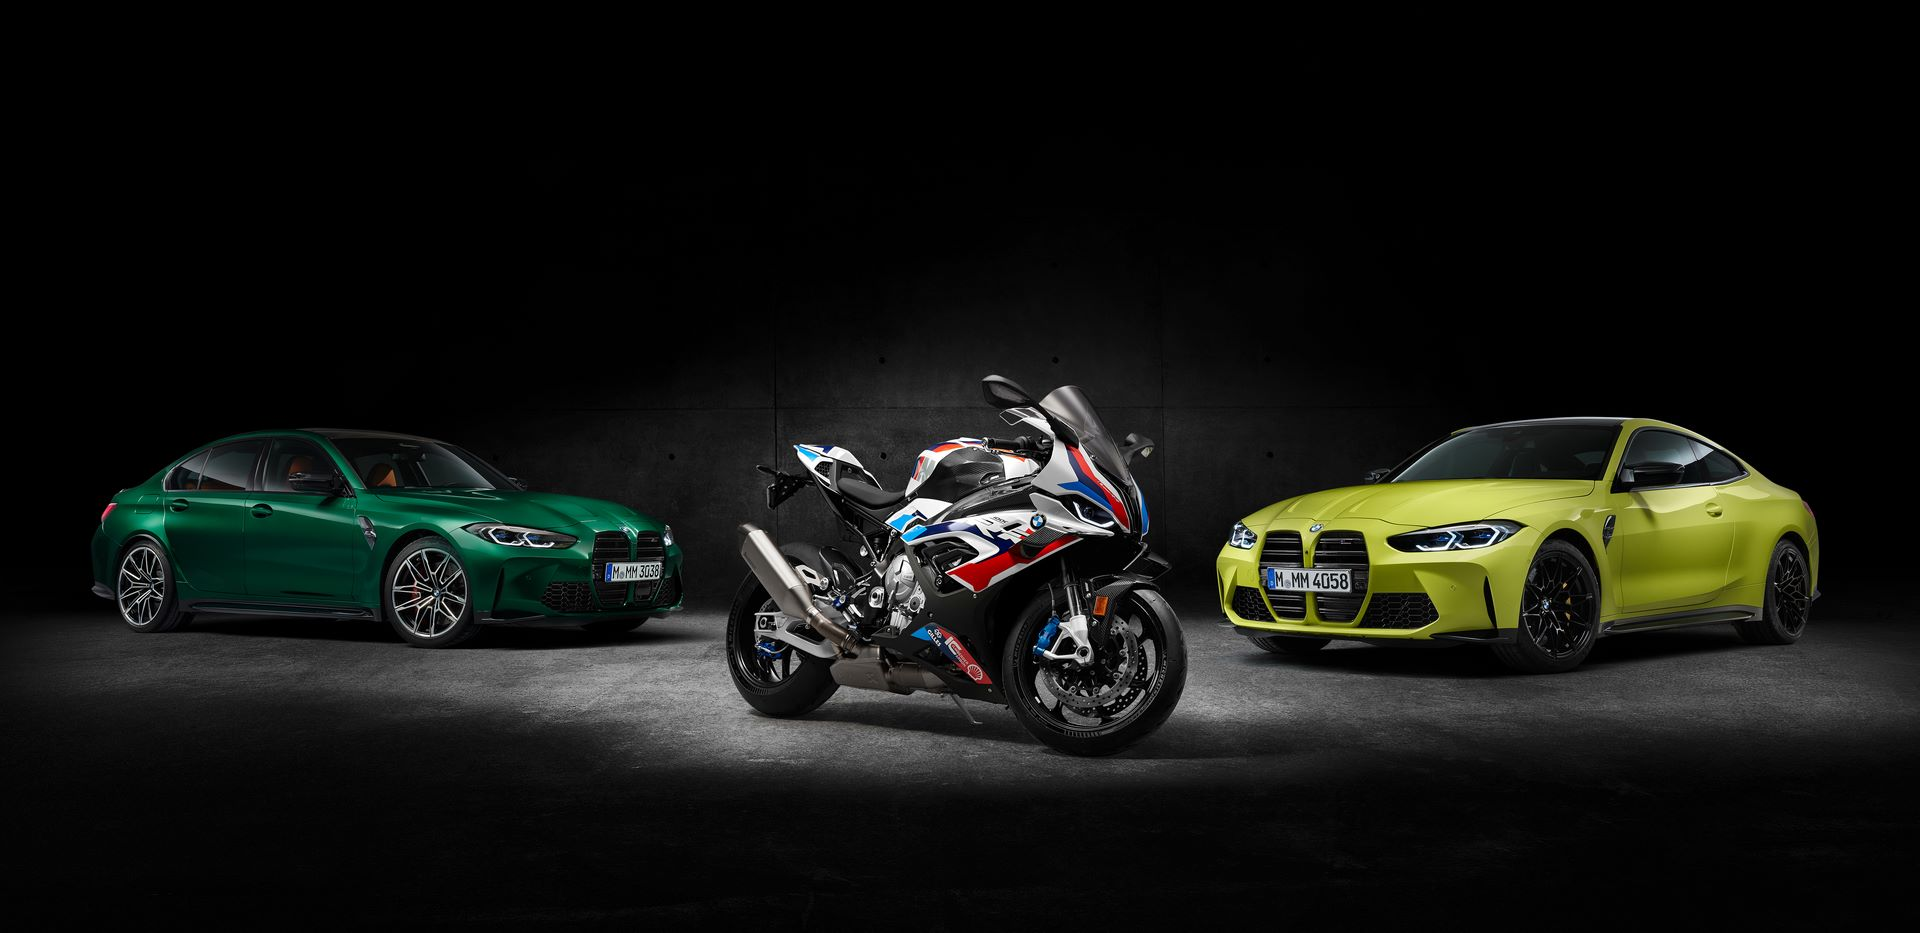 BMW-M3-M4-and-M-1000-RR-3